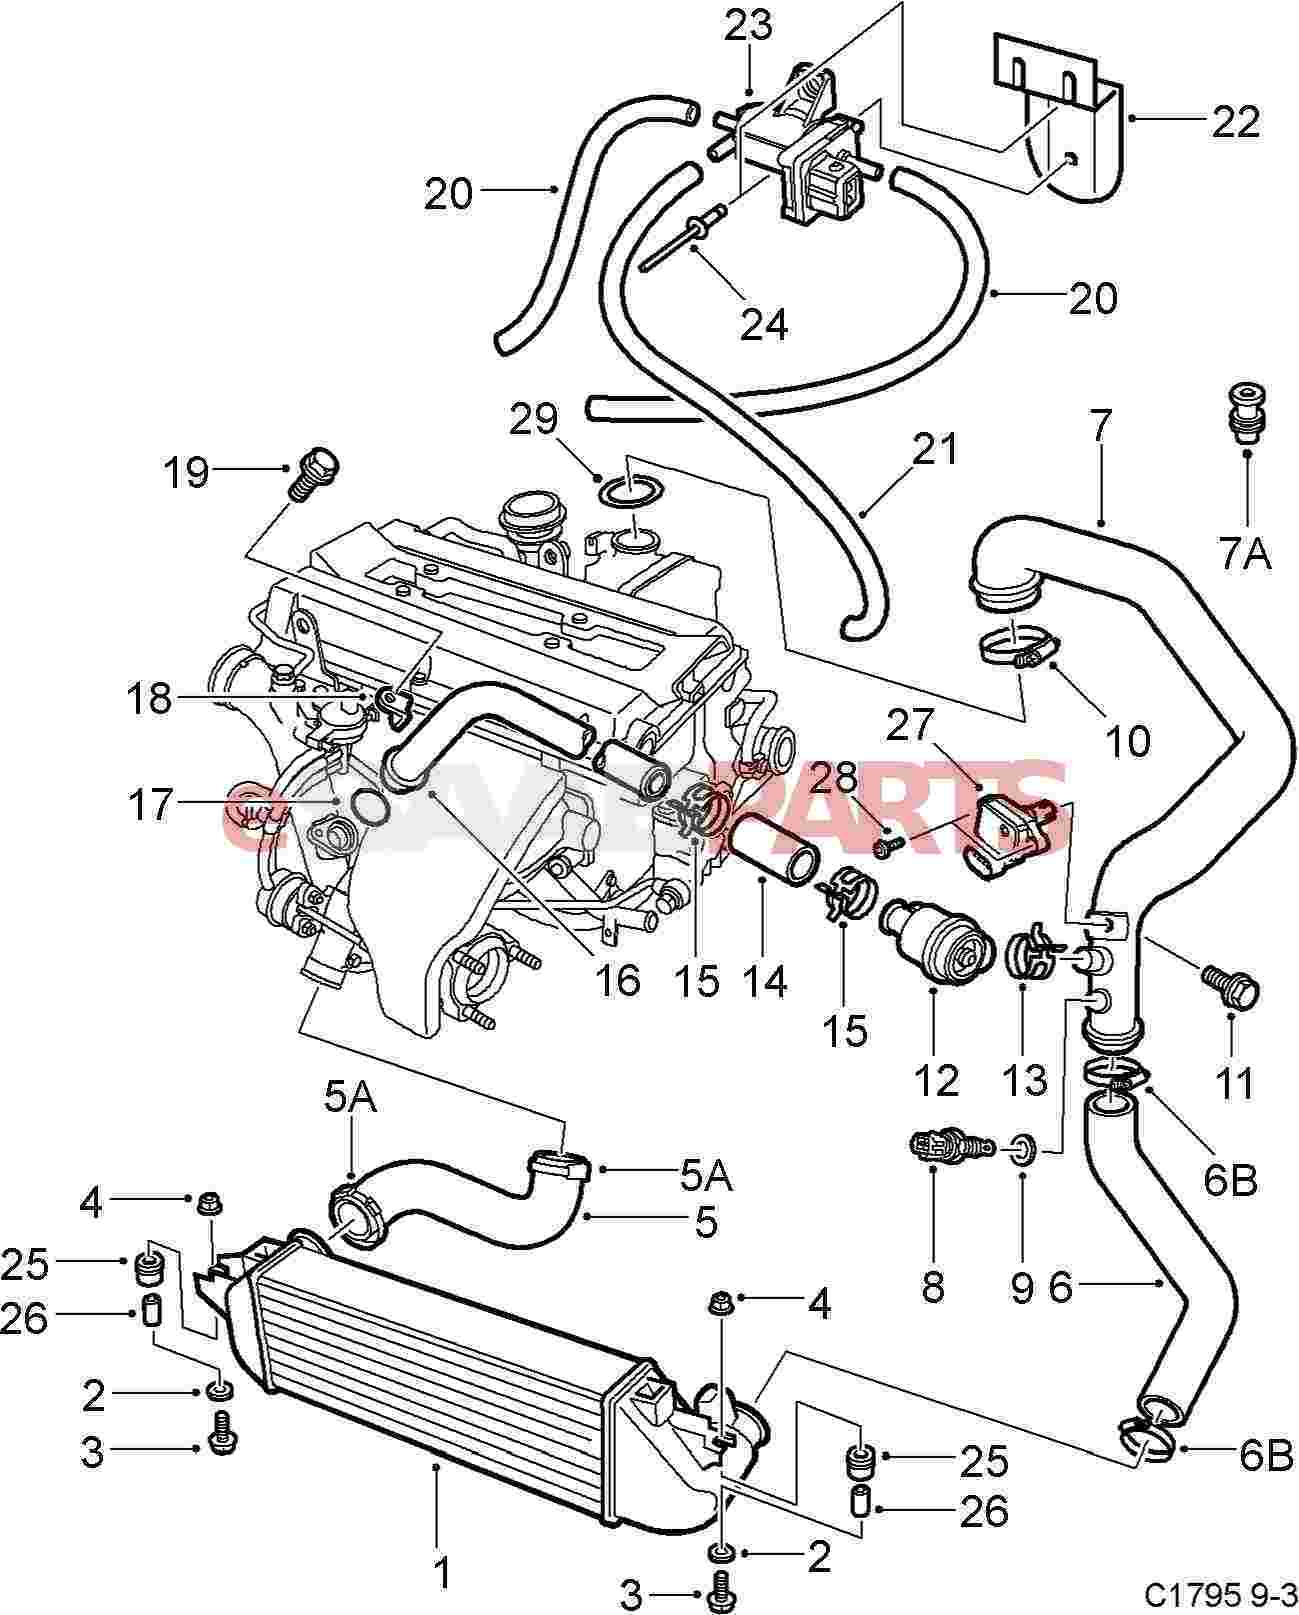 4226098] SAAB Bracket - Saab Parts from eSaabParts.comeSaabParts.com